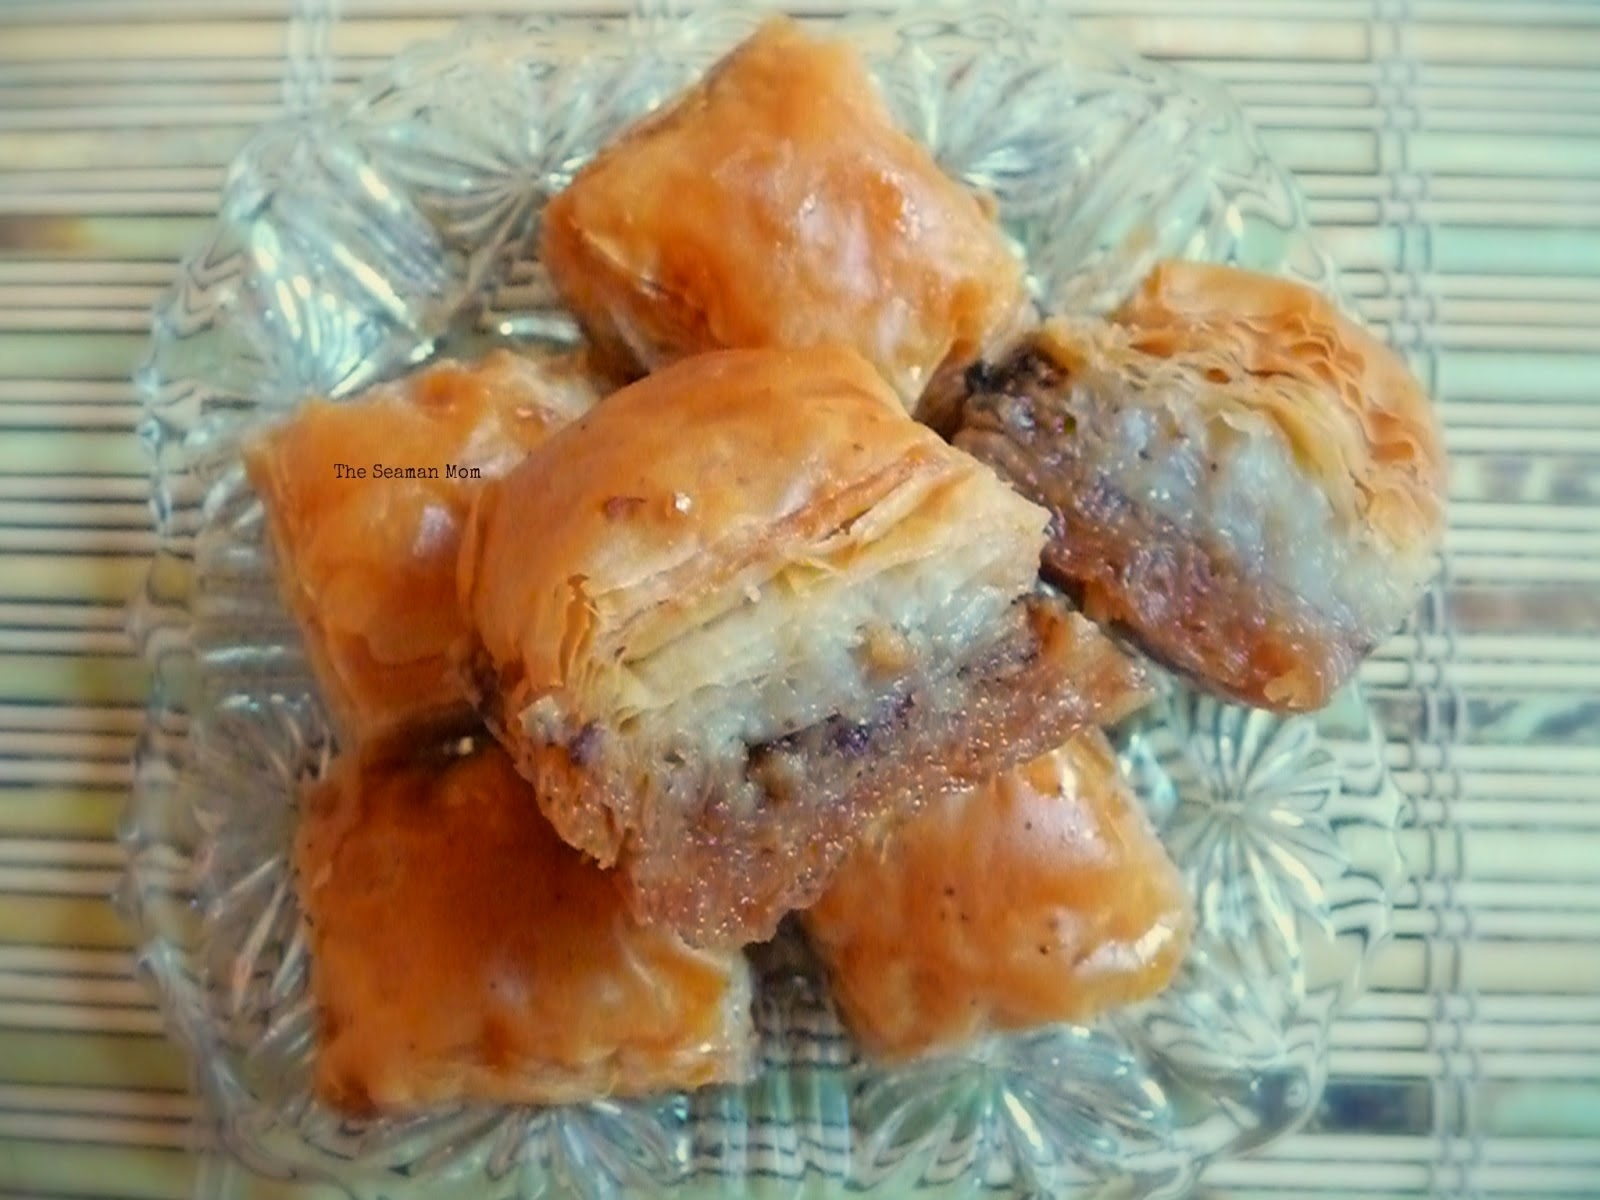 http://www.theseamanmom.com/2014/05/Turkish-Baklava-with-walnuts.html#.U29ctii9ahI